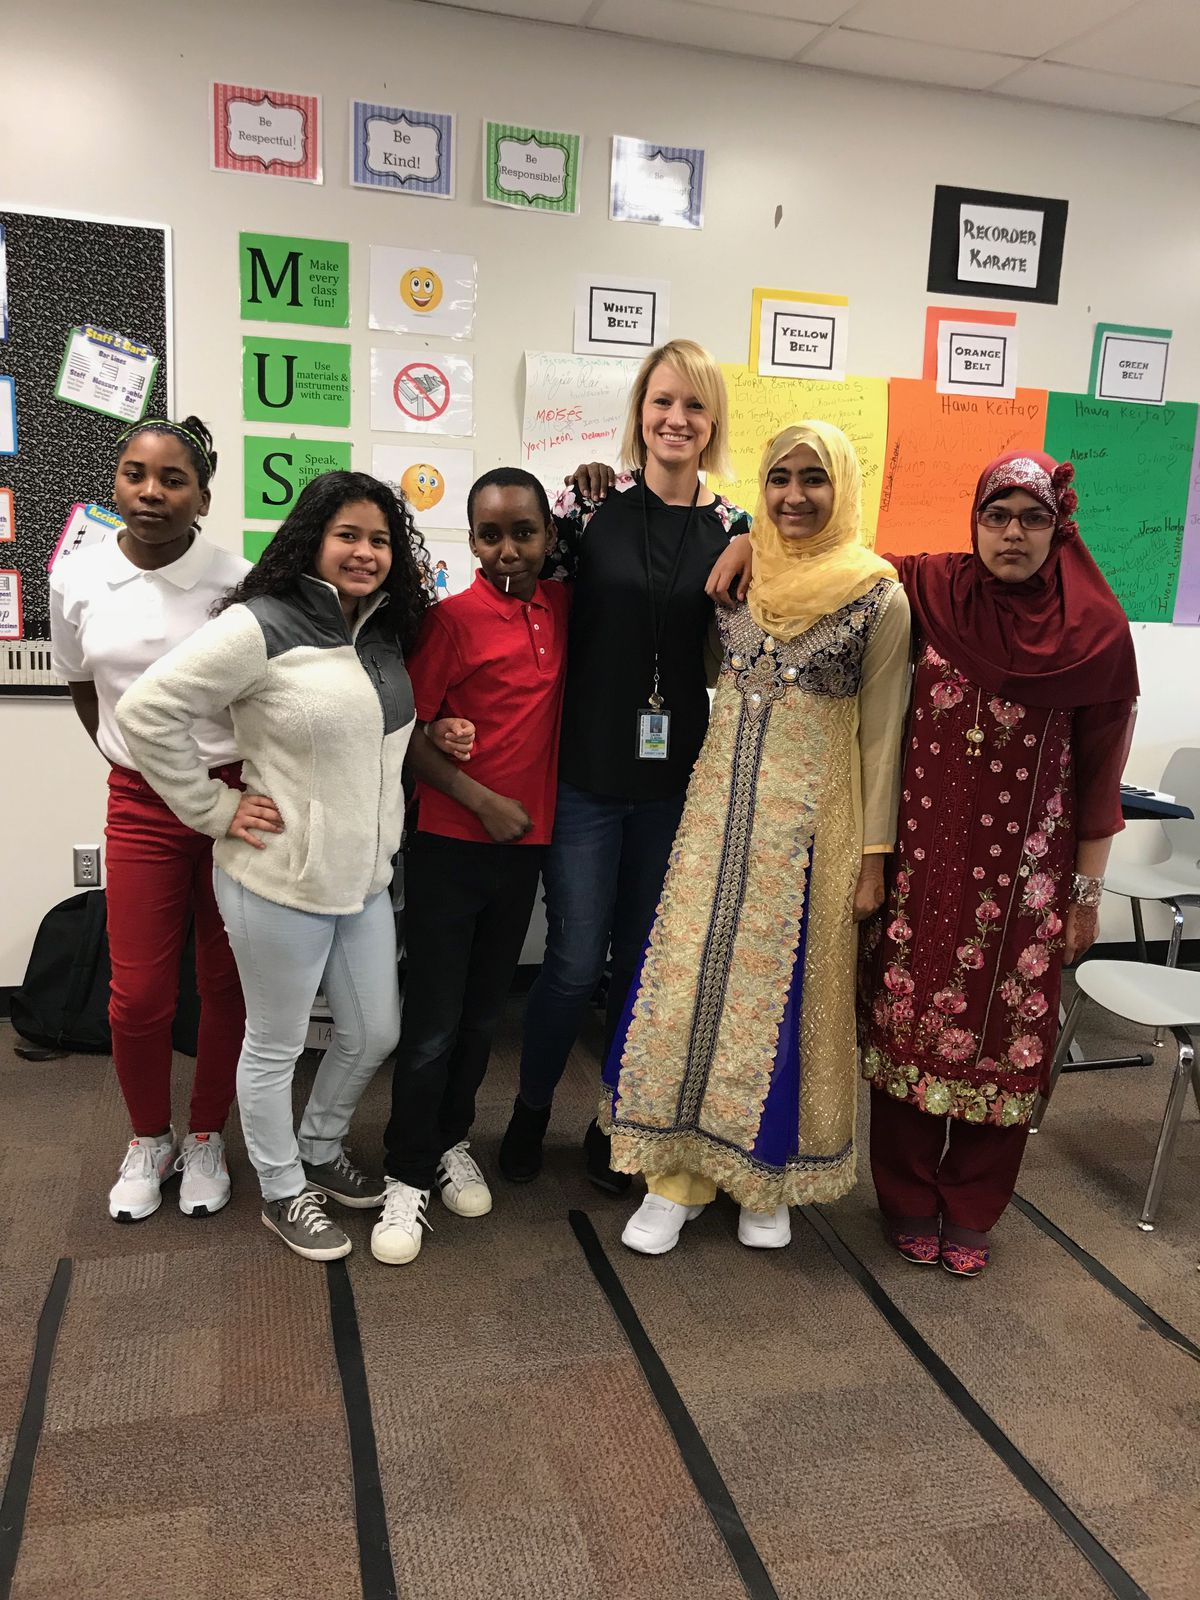 Music teacher Kristin Gladish poses with her students in the Indianapolis Public Schools Newcomer Program.